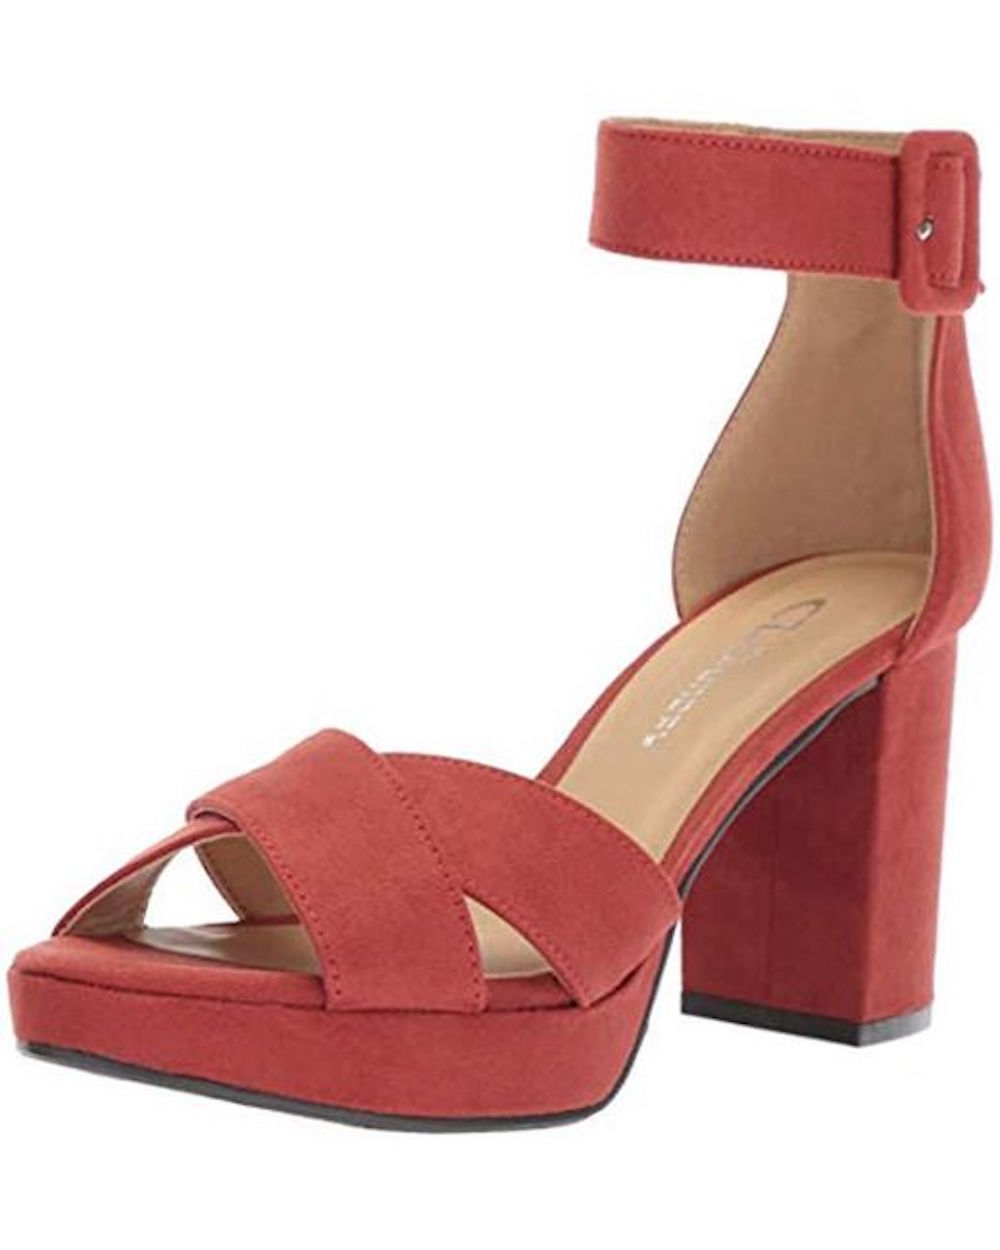 becc34f92344 CL by Chinese Laundry Womens Gala Open Toe Casual Ankle Strap Sandals